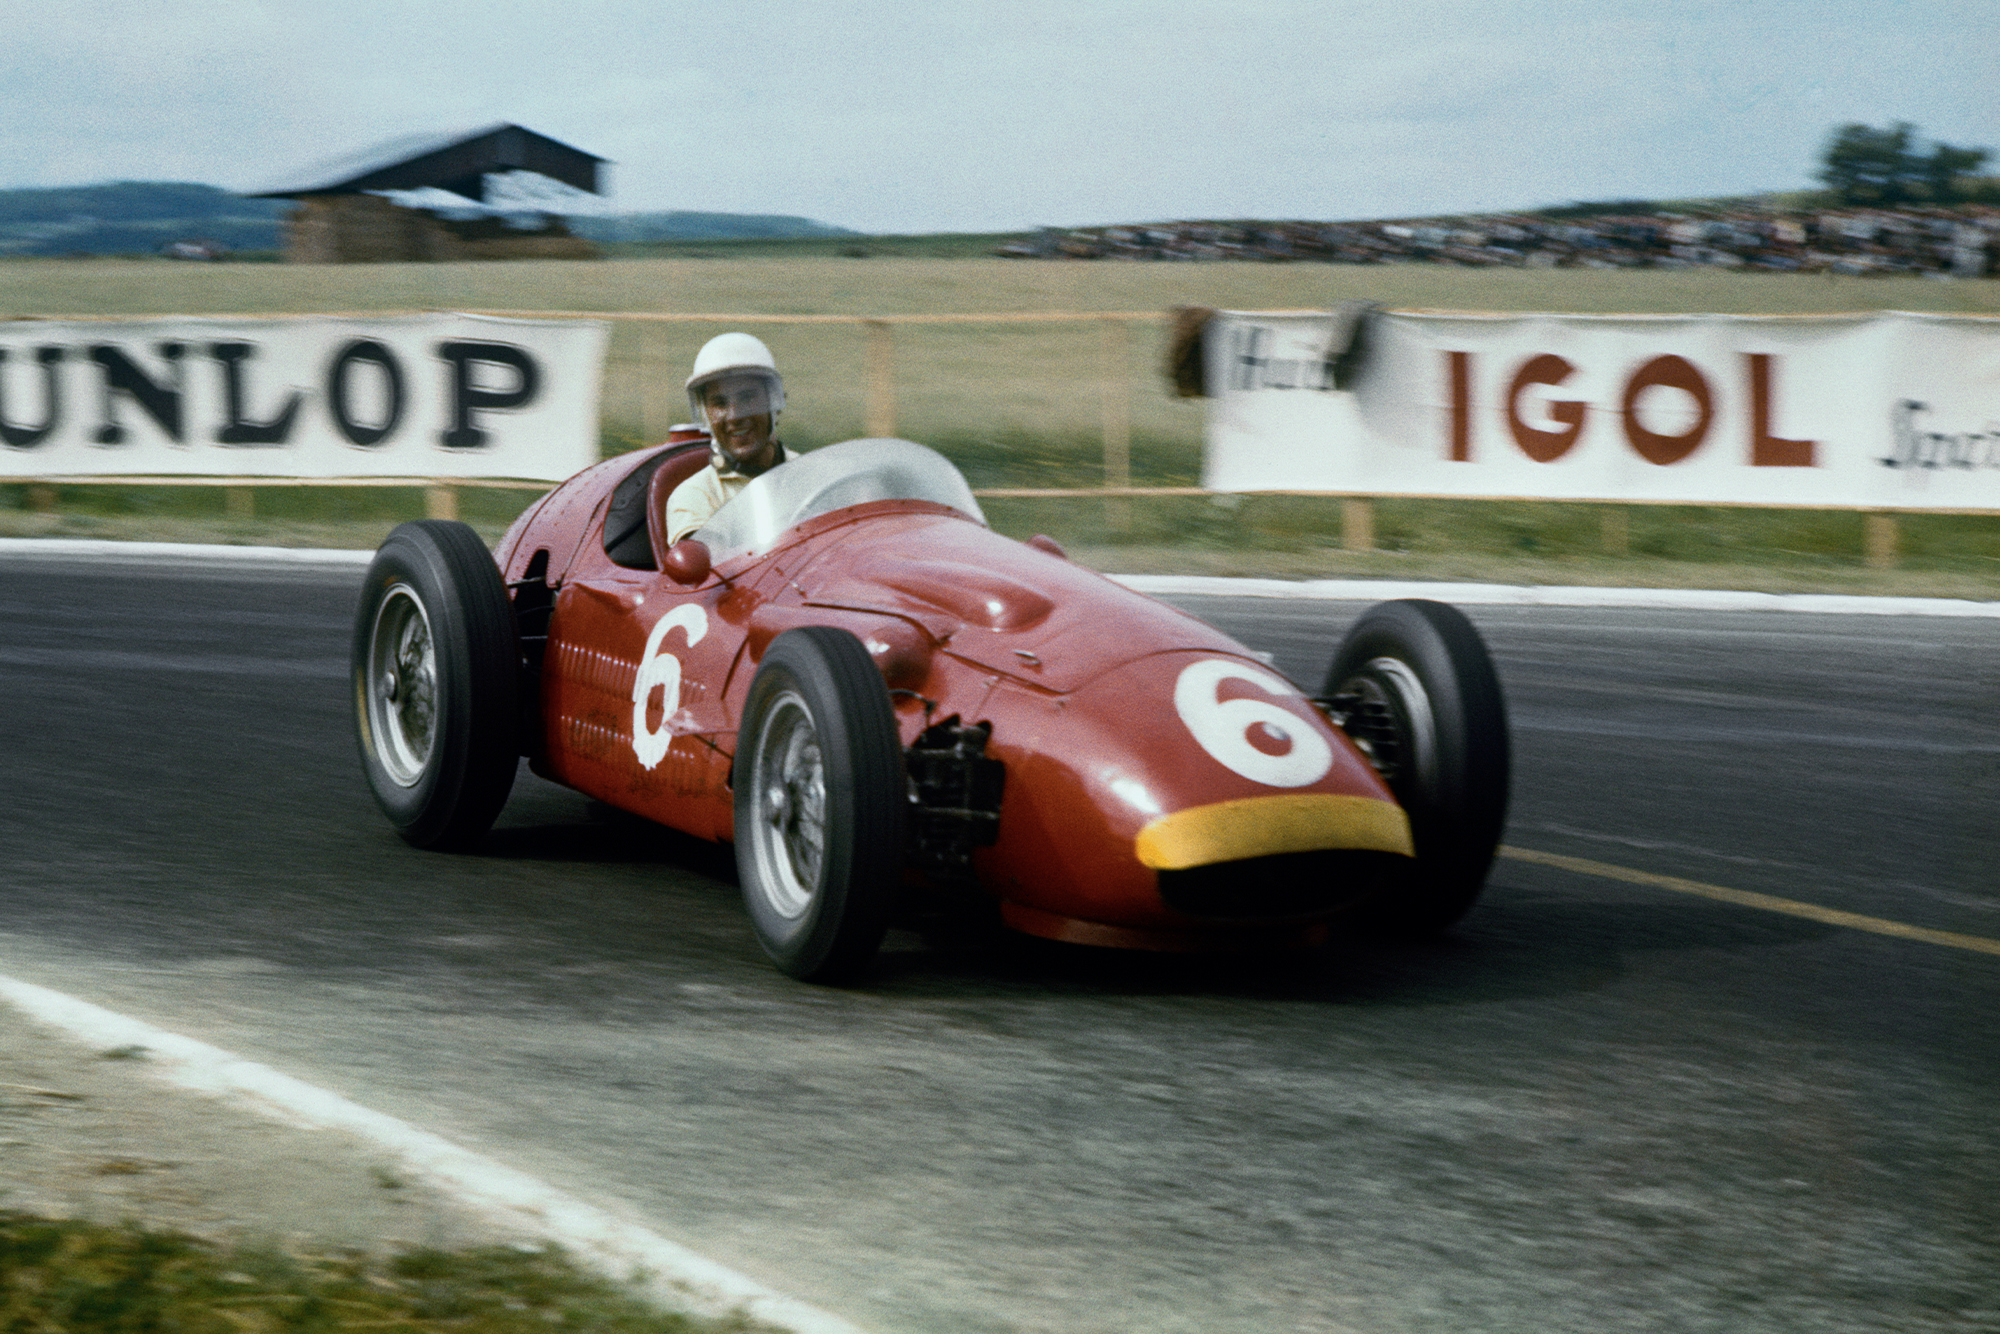 Stirling Moss (Maserati 250F), on his way to 5th place at the 1956 French Grand Prix, Reims.